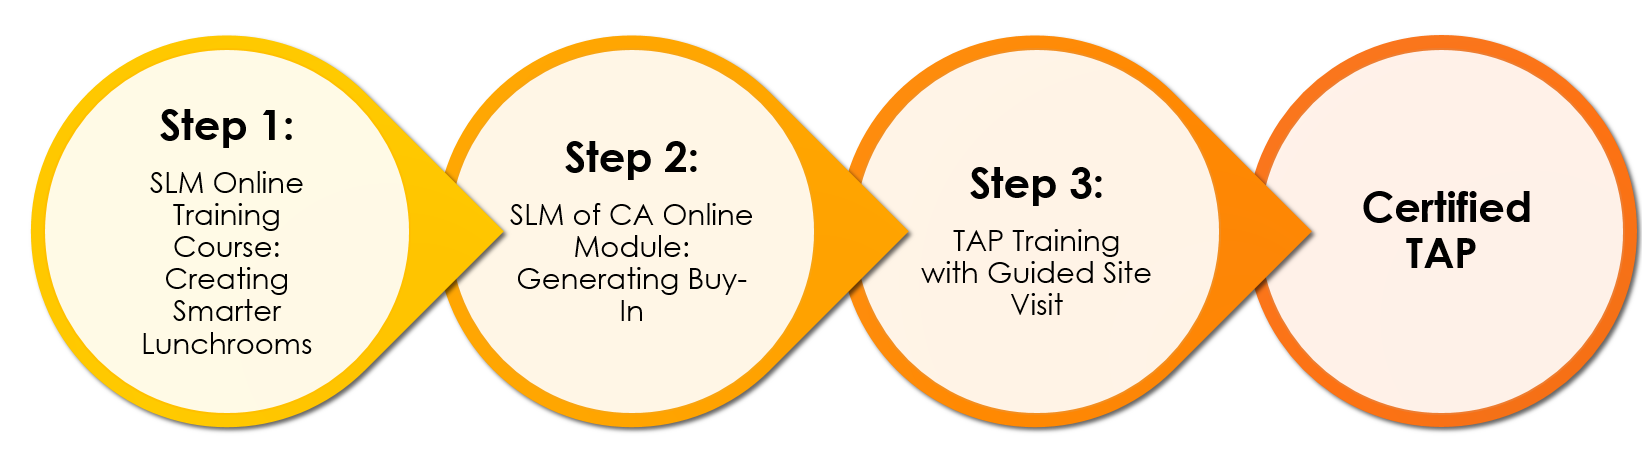 SLM of CA TAP Certification Pathway